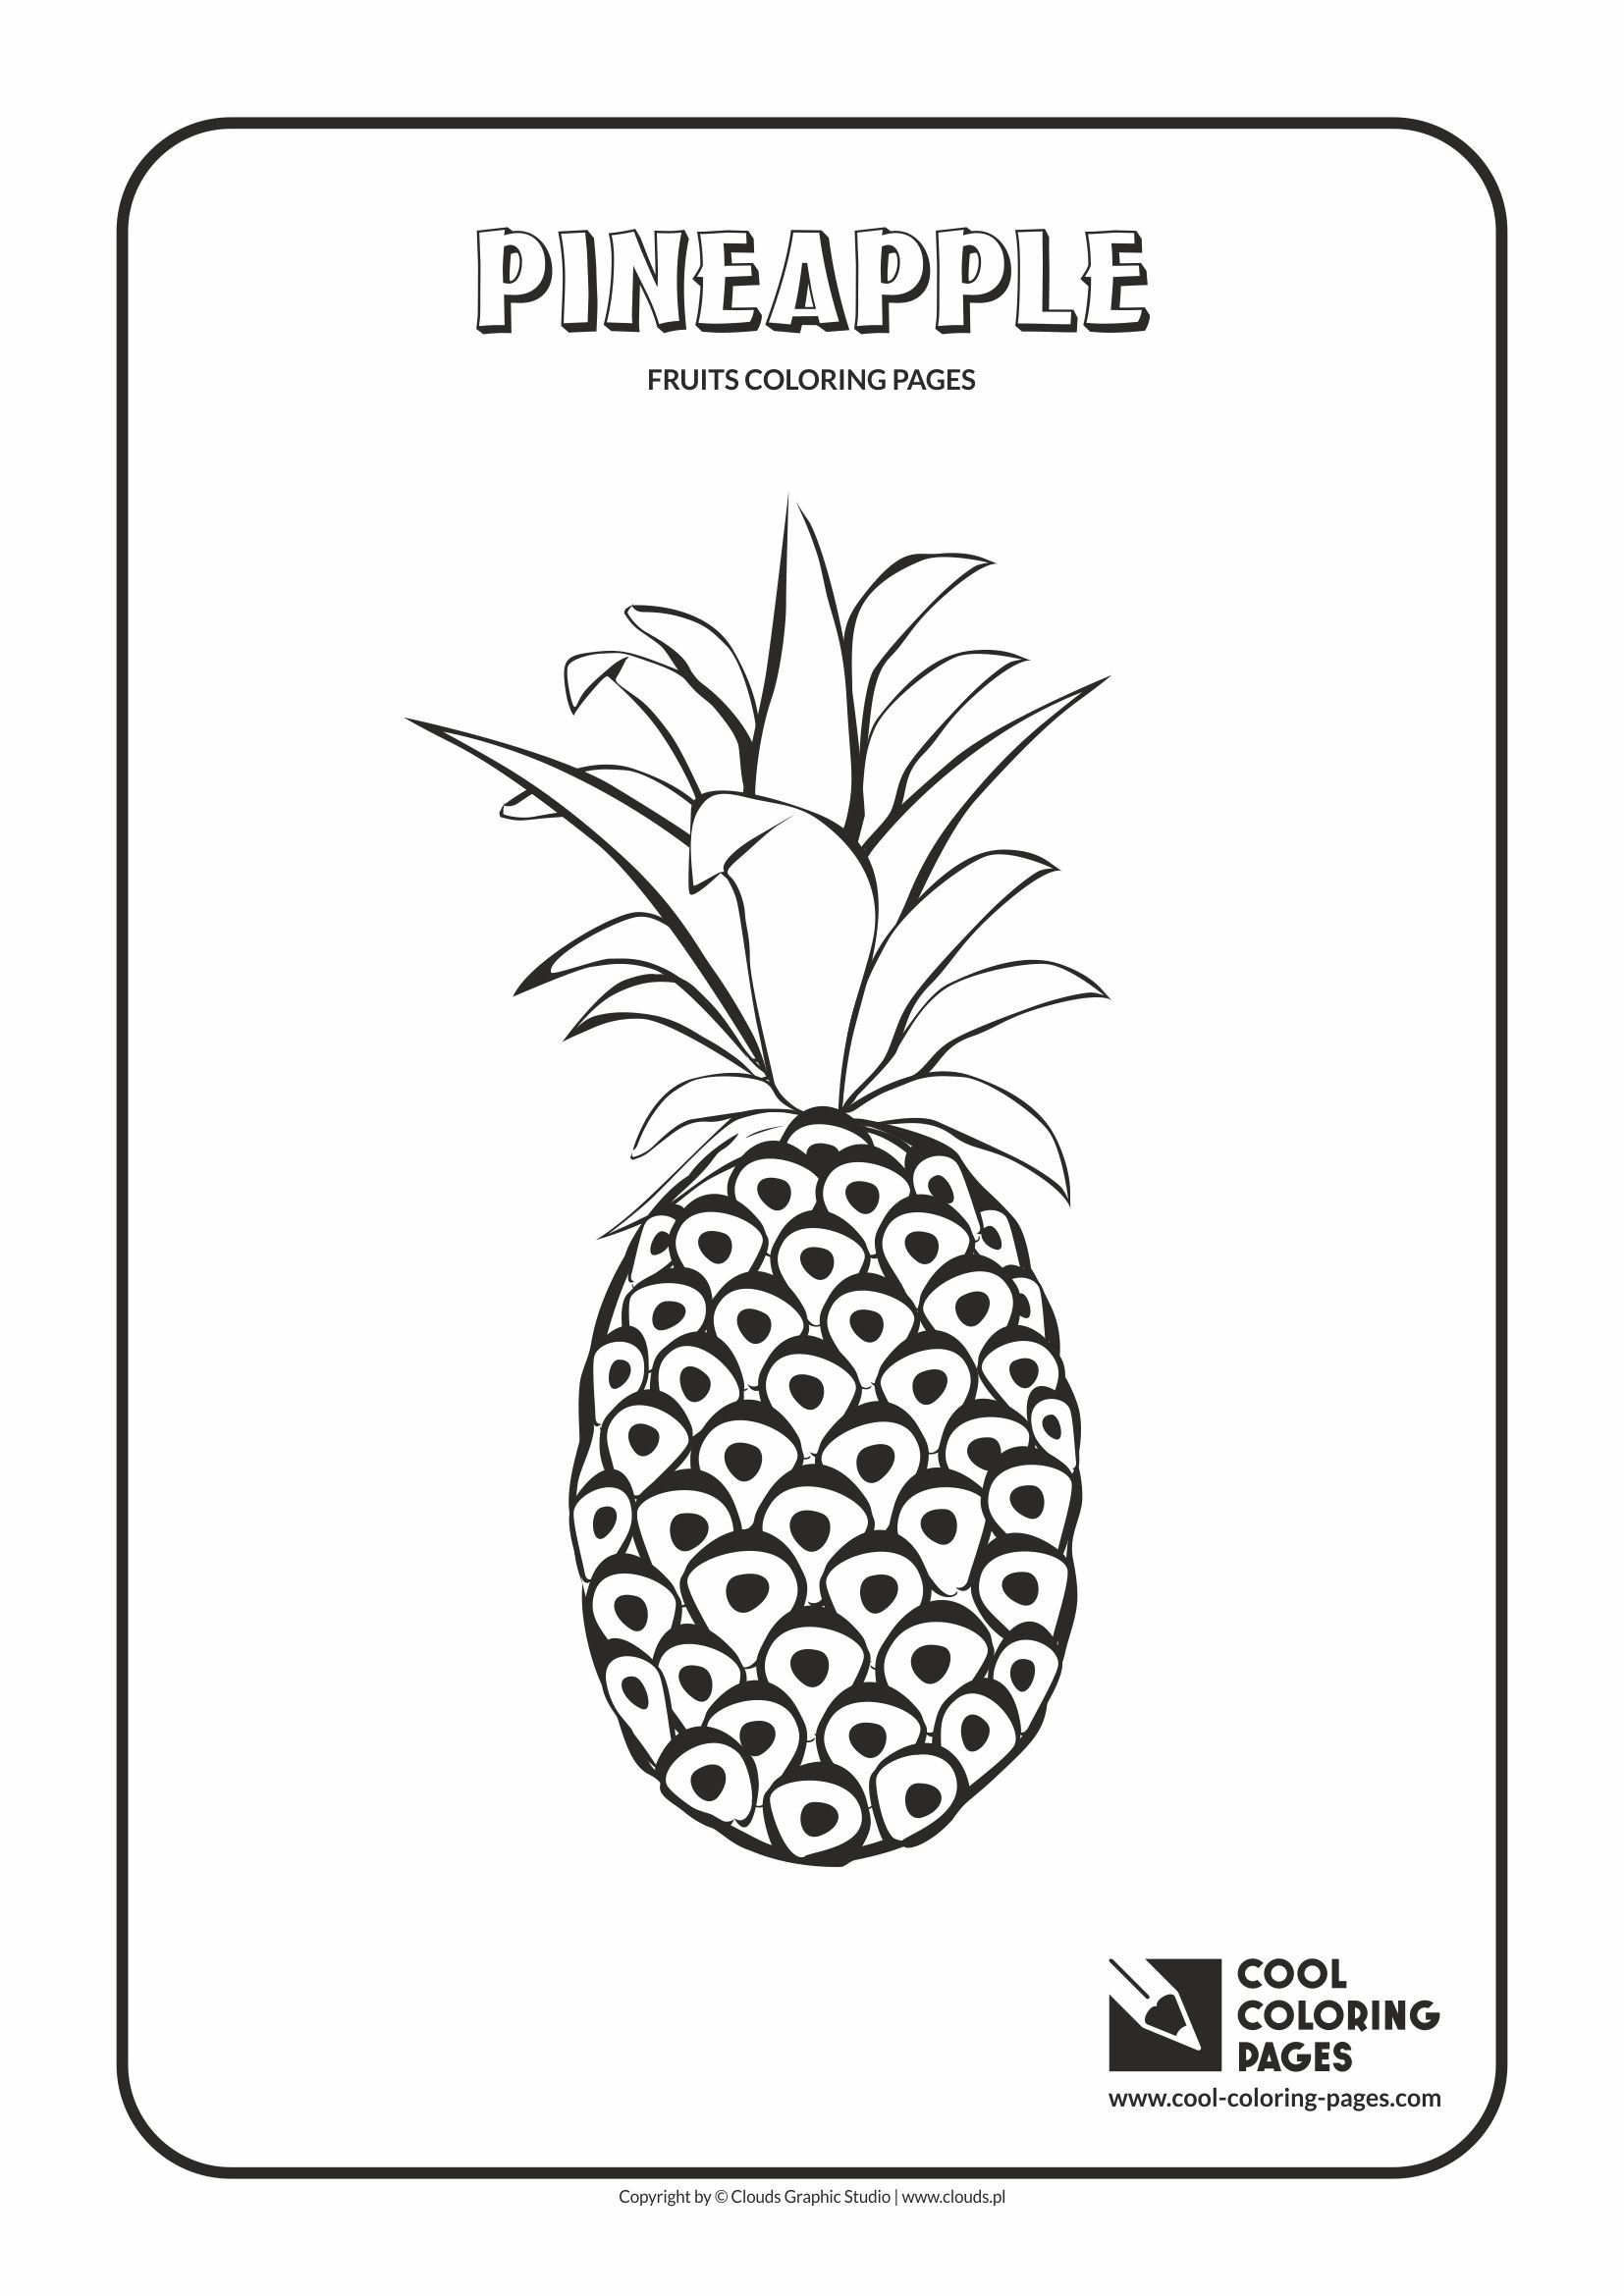 Cool Coloring Pages - Plants / Pineapple / Coloring page with pineapple